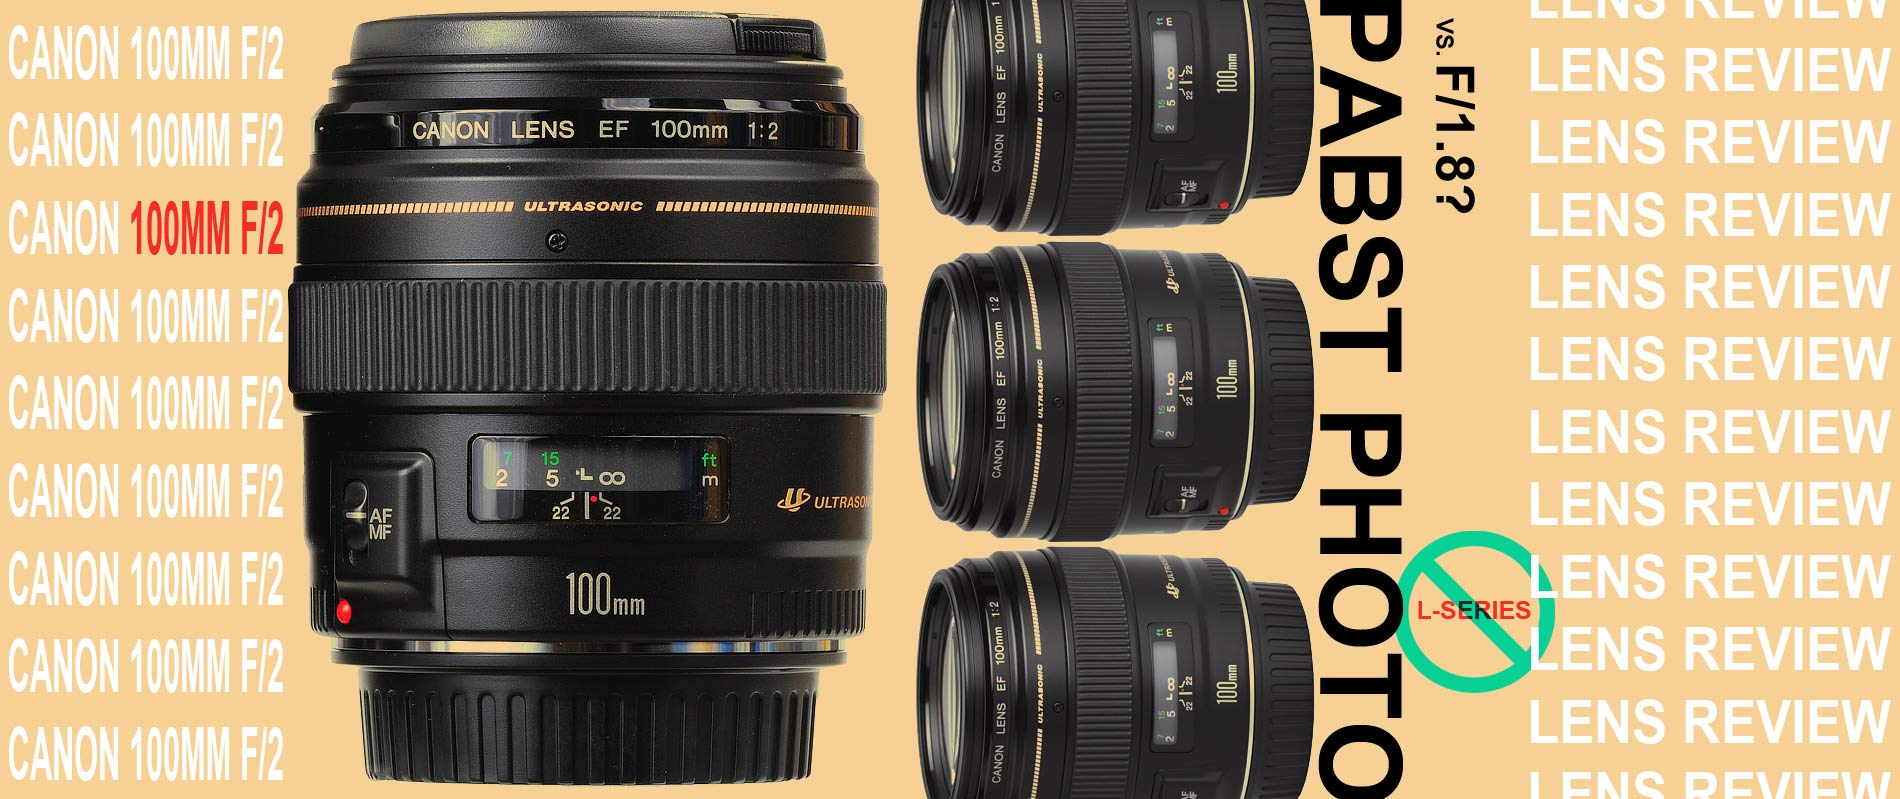 Canon-100mm-f2-review-vs-85mm-ef-lens